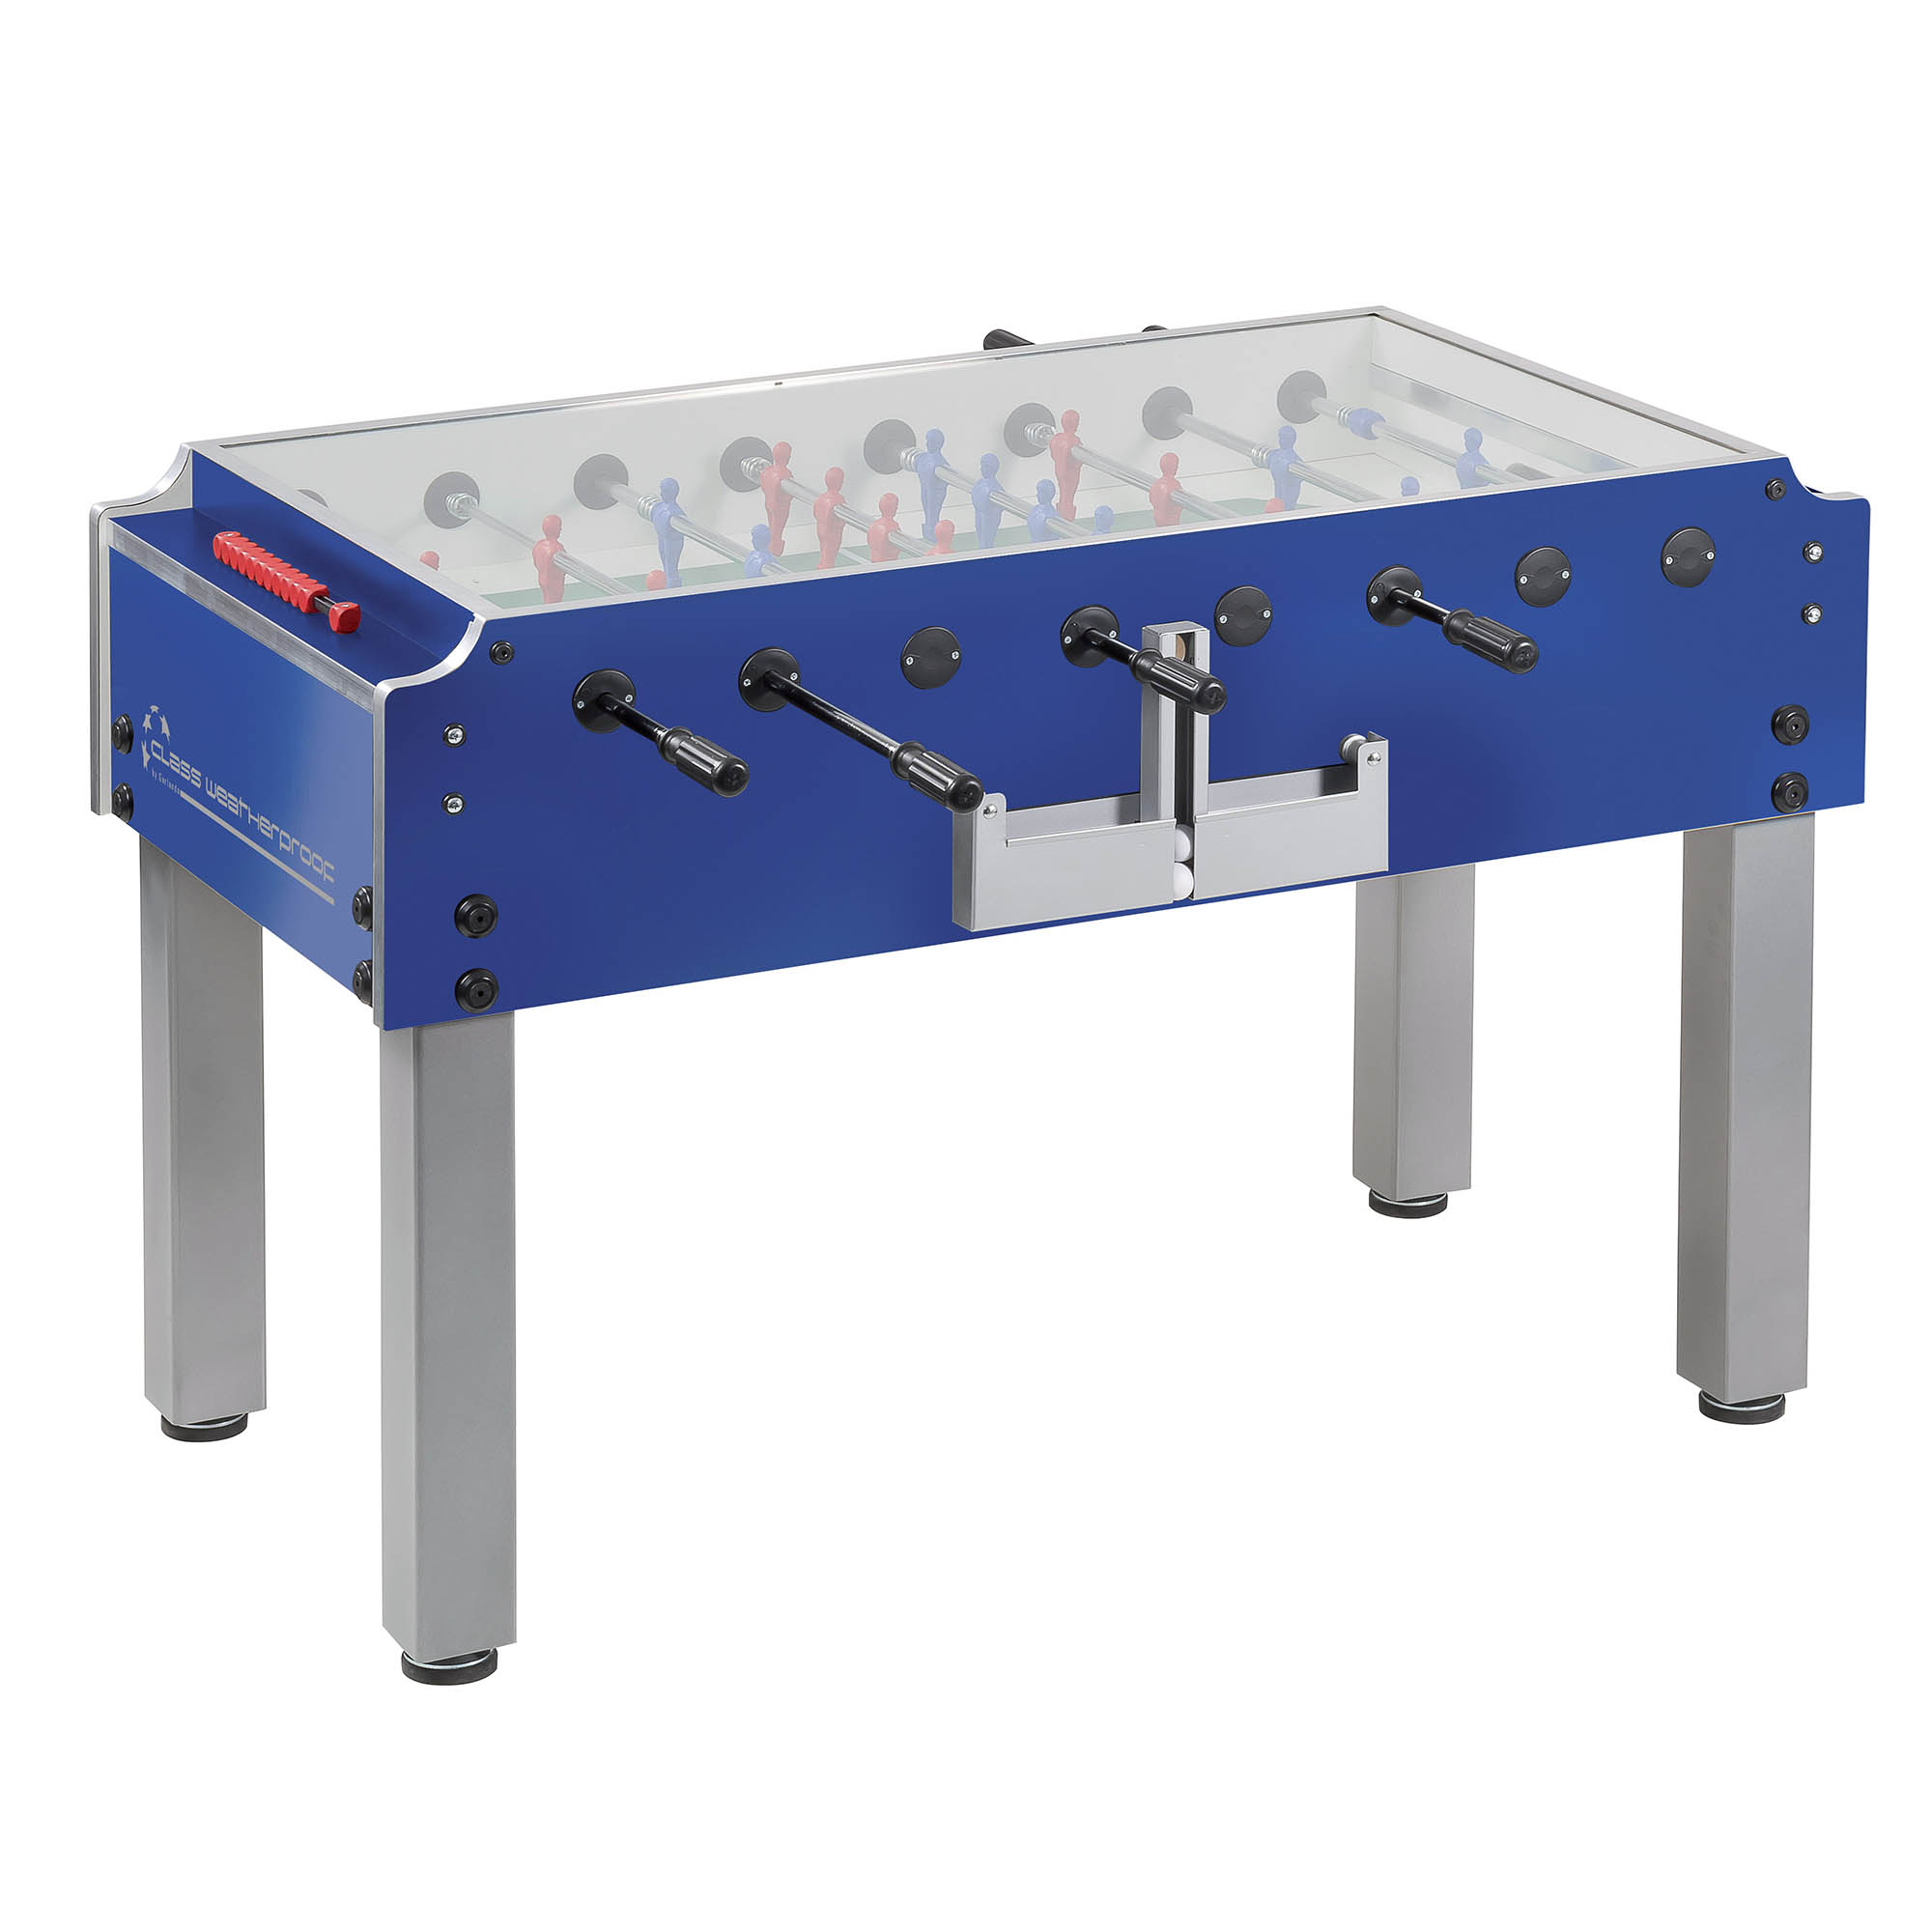 Garlando class weatherproof football table best uk prices for Html table class